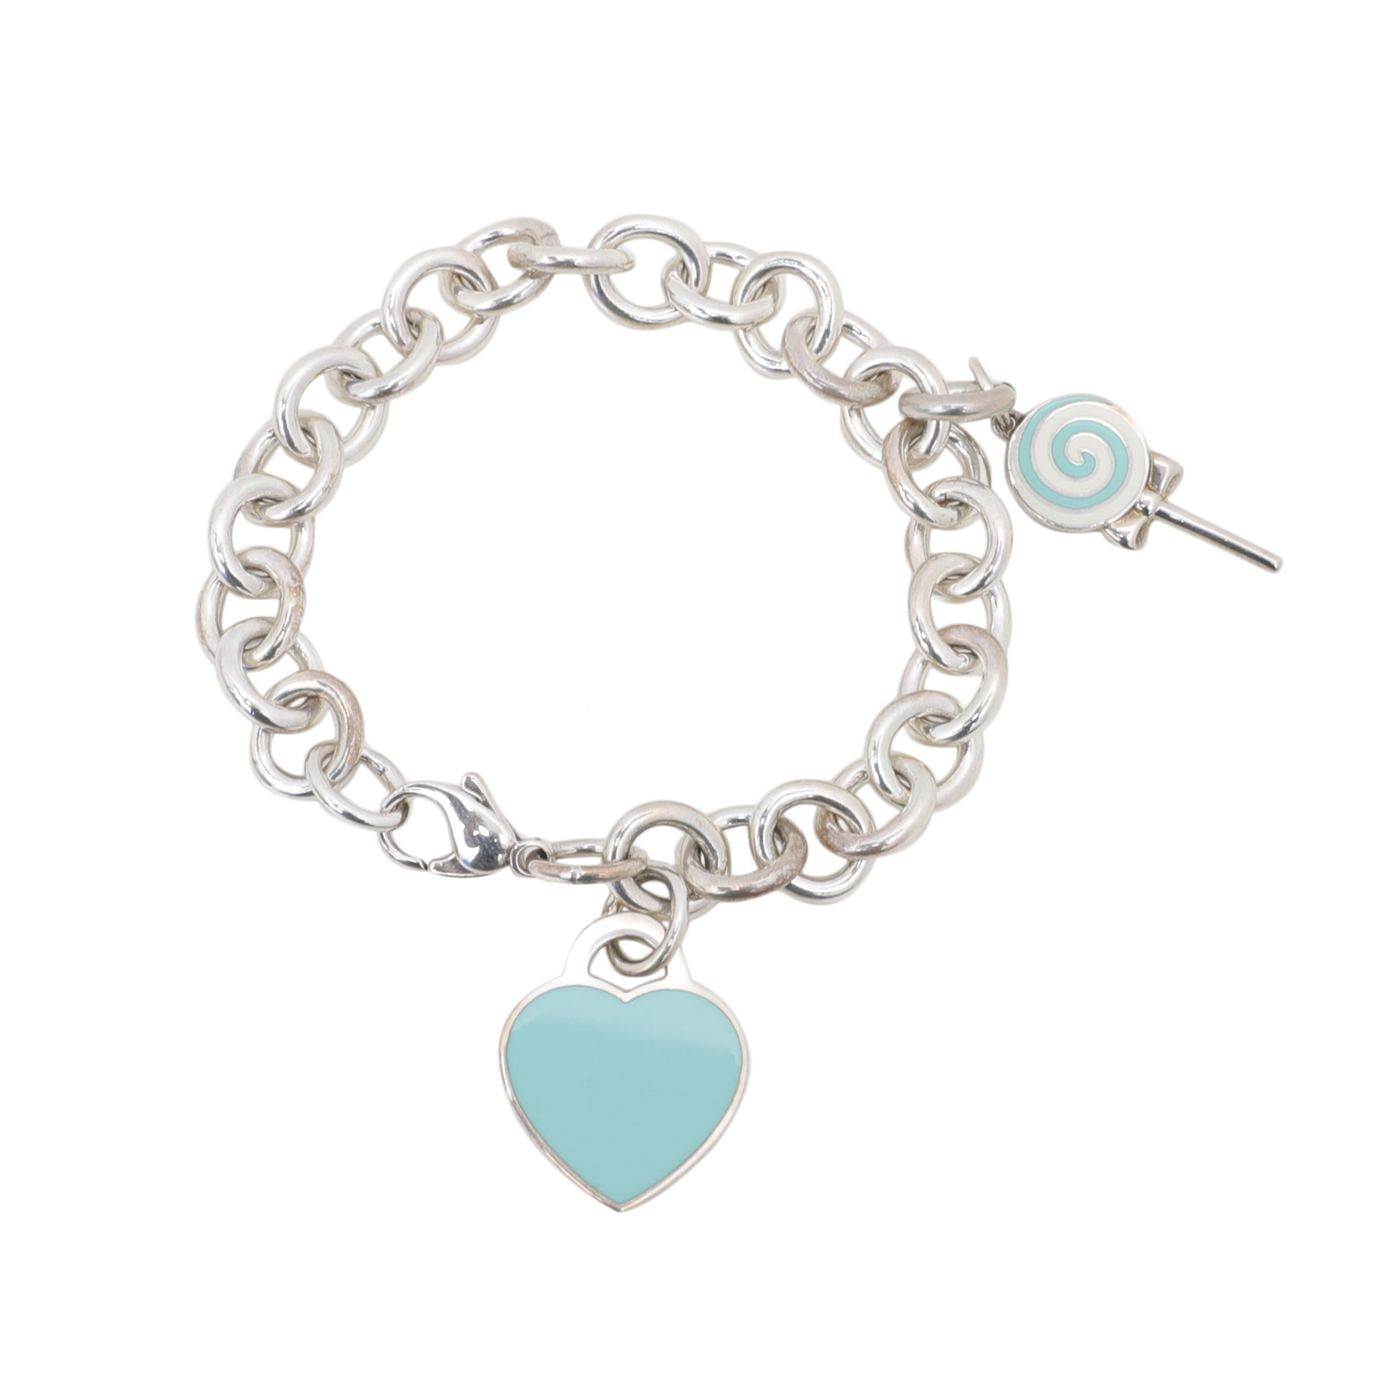 Tiffany & Co Silver Return To Tiffany Heart Tag Lollipop Charm Bracelet